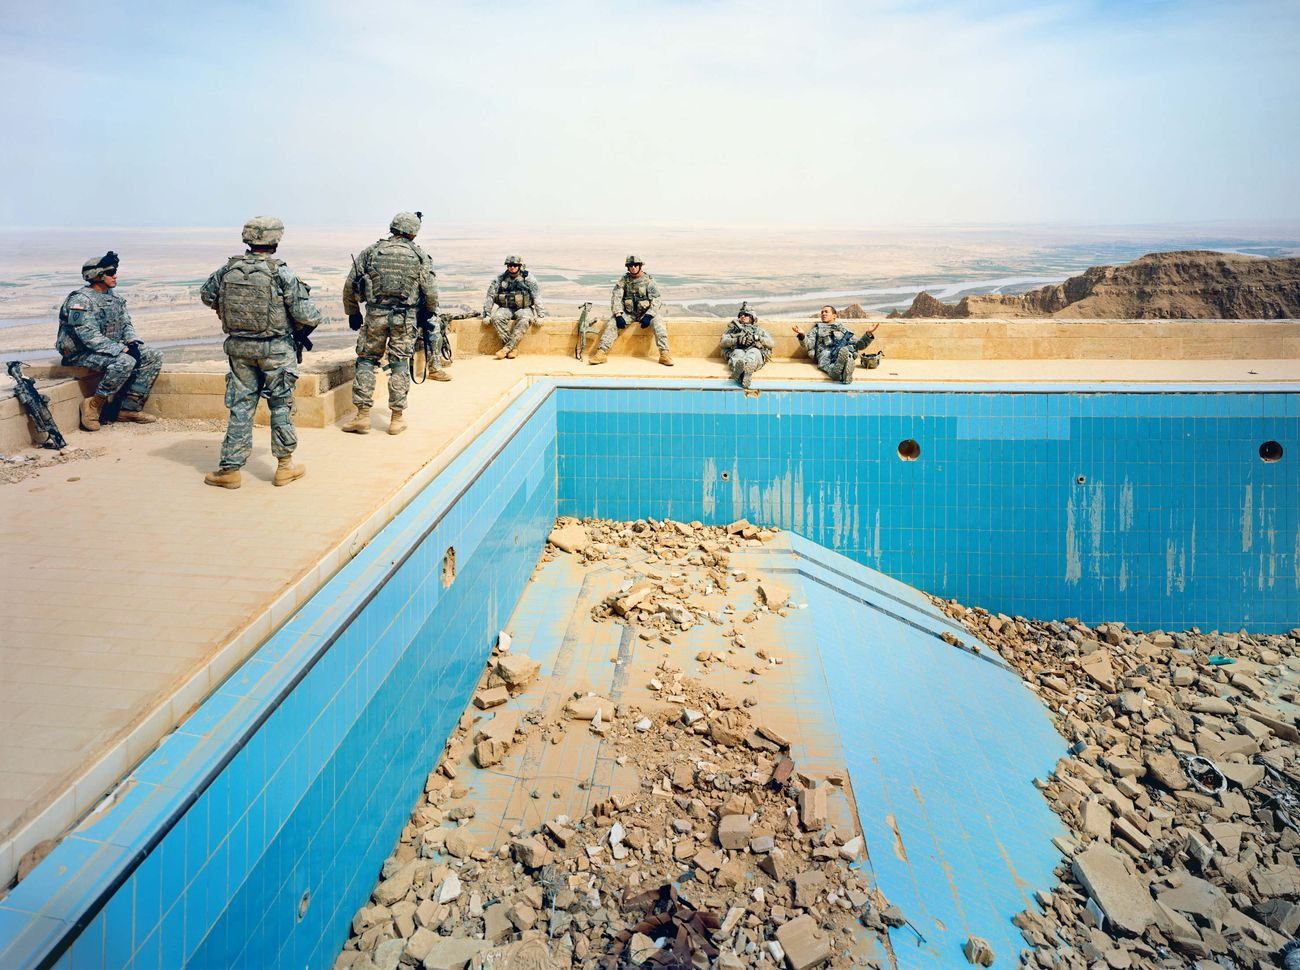 Richard Mosse, Pool at Uday's Palace, Salah a Din Province, Iraq, 2009. Courtesy of the artist & Jack Shainman Gallery, New York © Richard Mosse